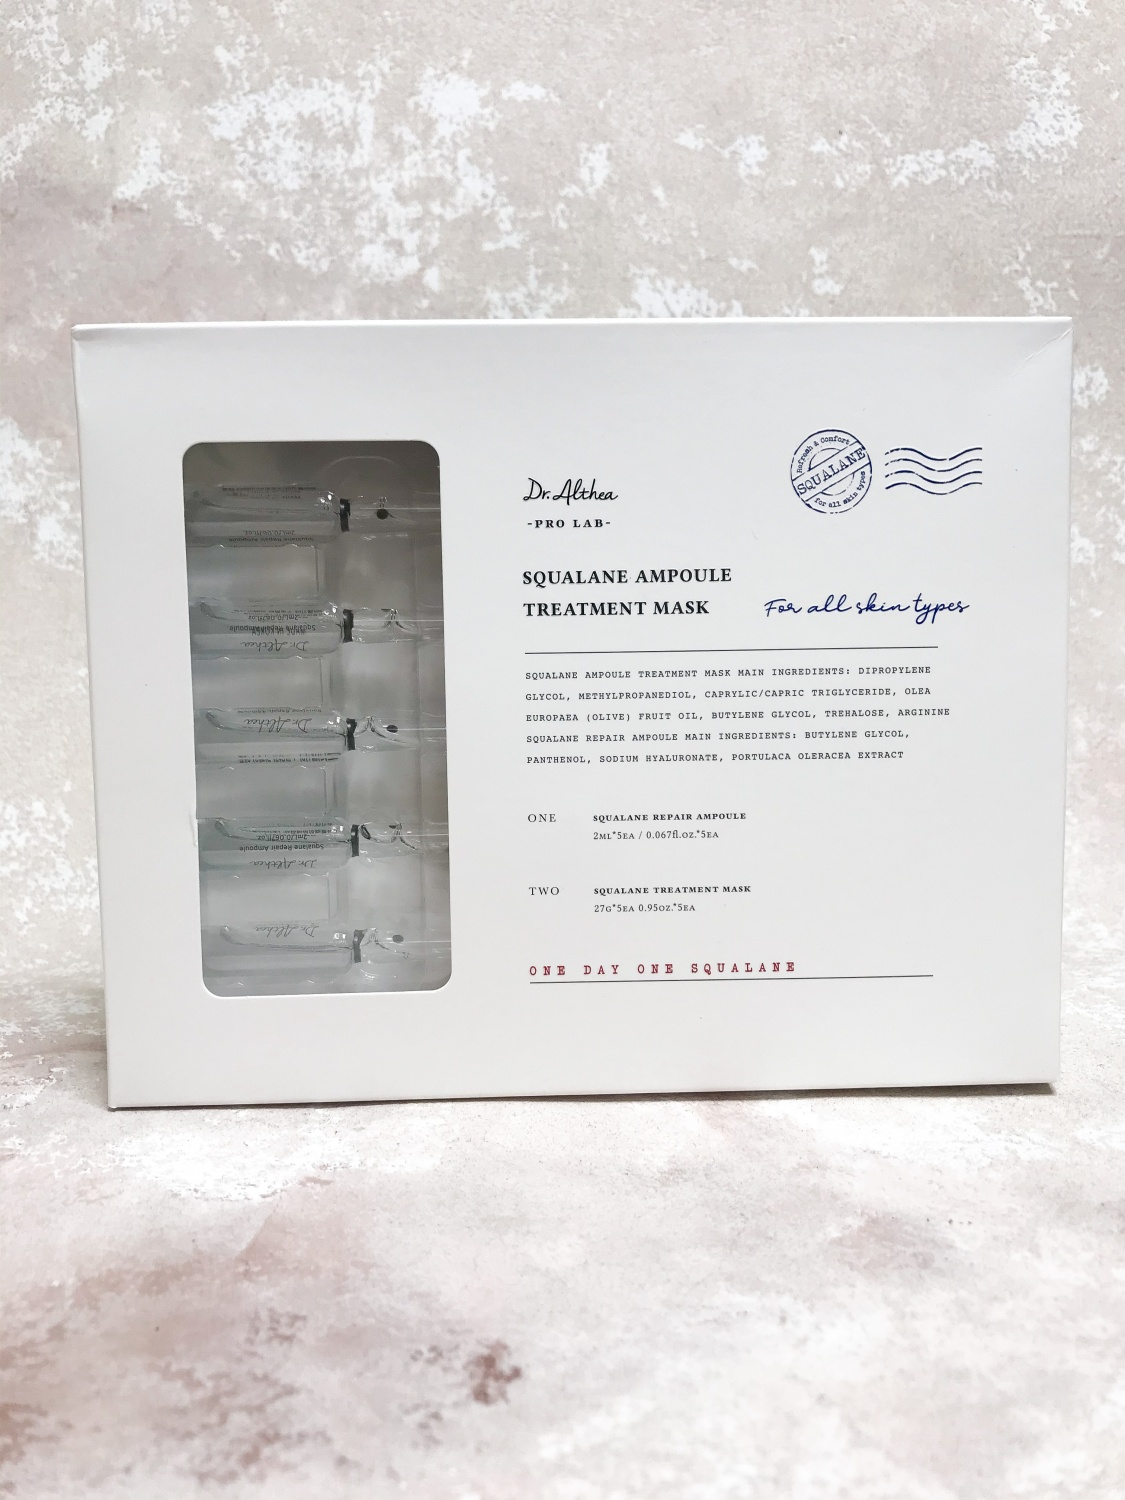 Dr. Althea Squalane Ampoule Treatment Mask